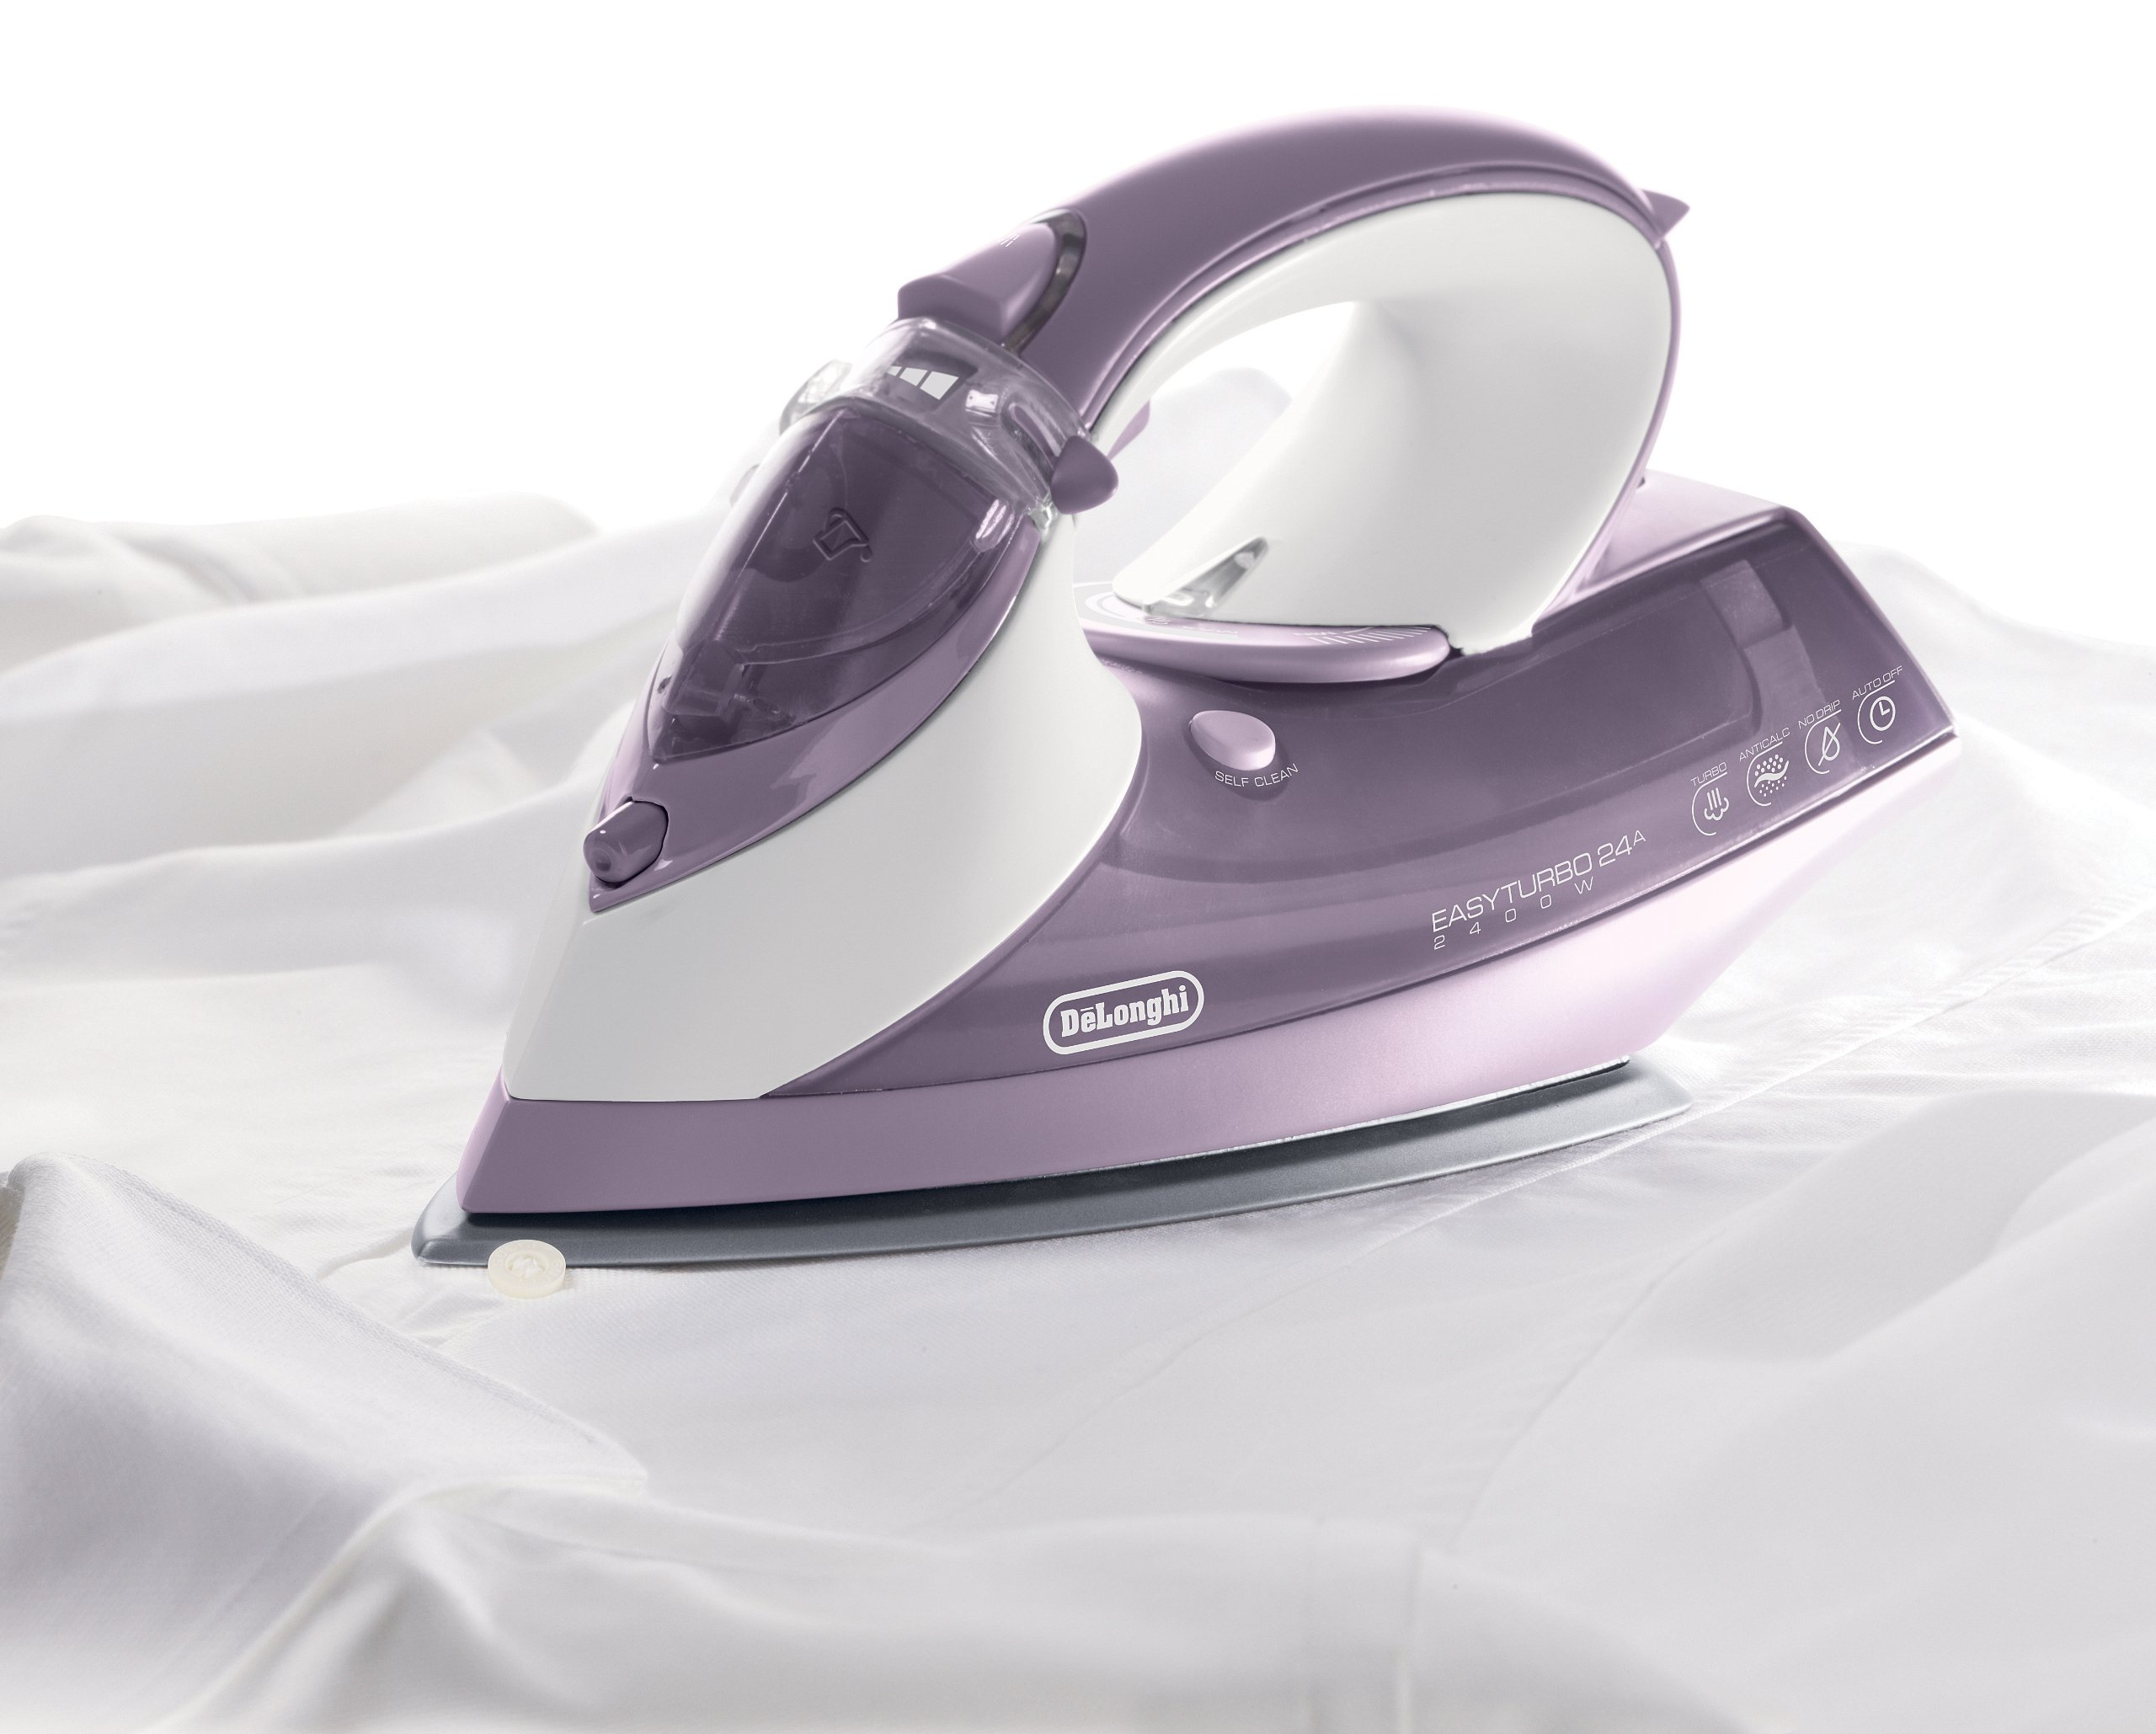 DeLonghi 1750-Watt Steam Iron with Ceramic and Stainless Steel Soleplate